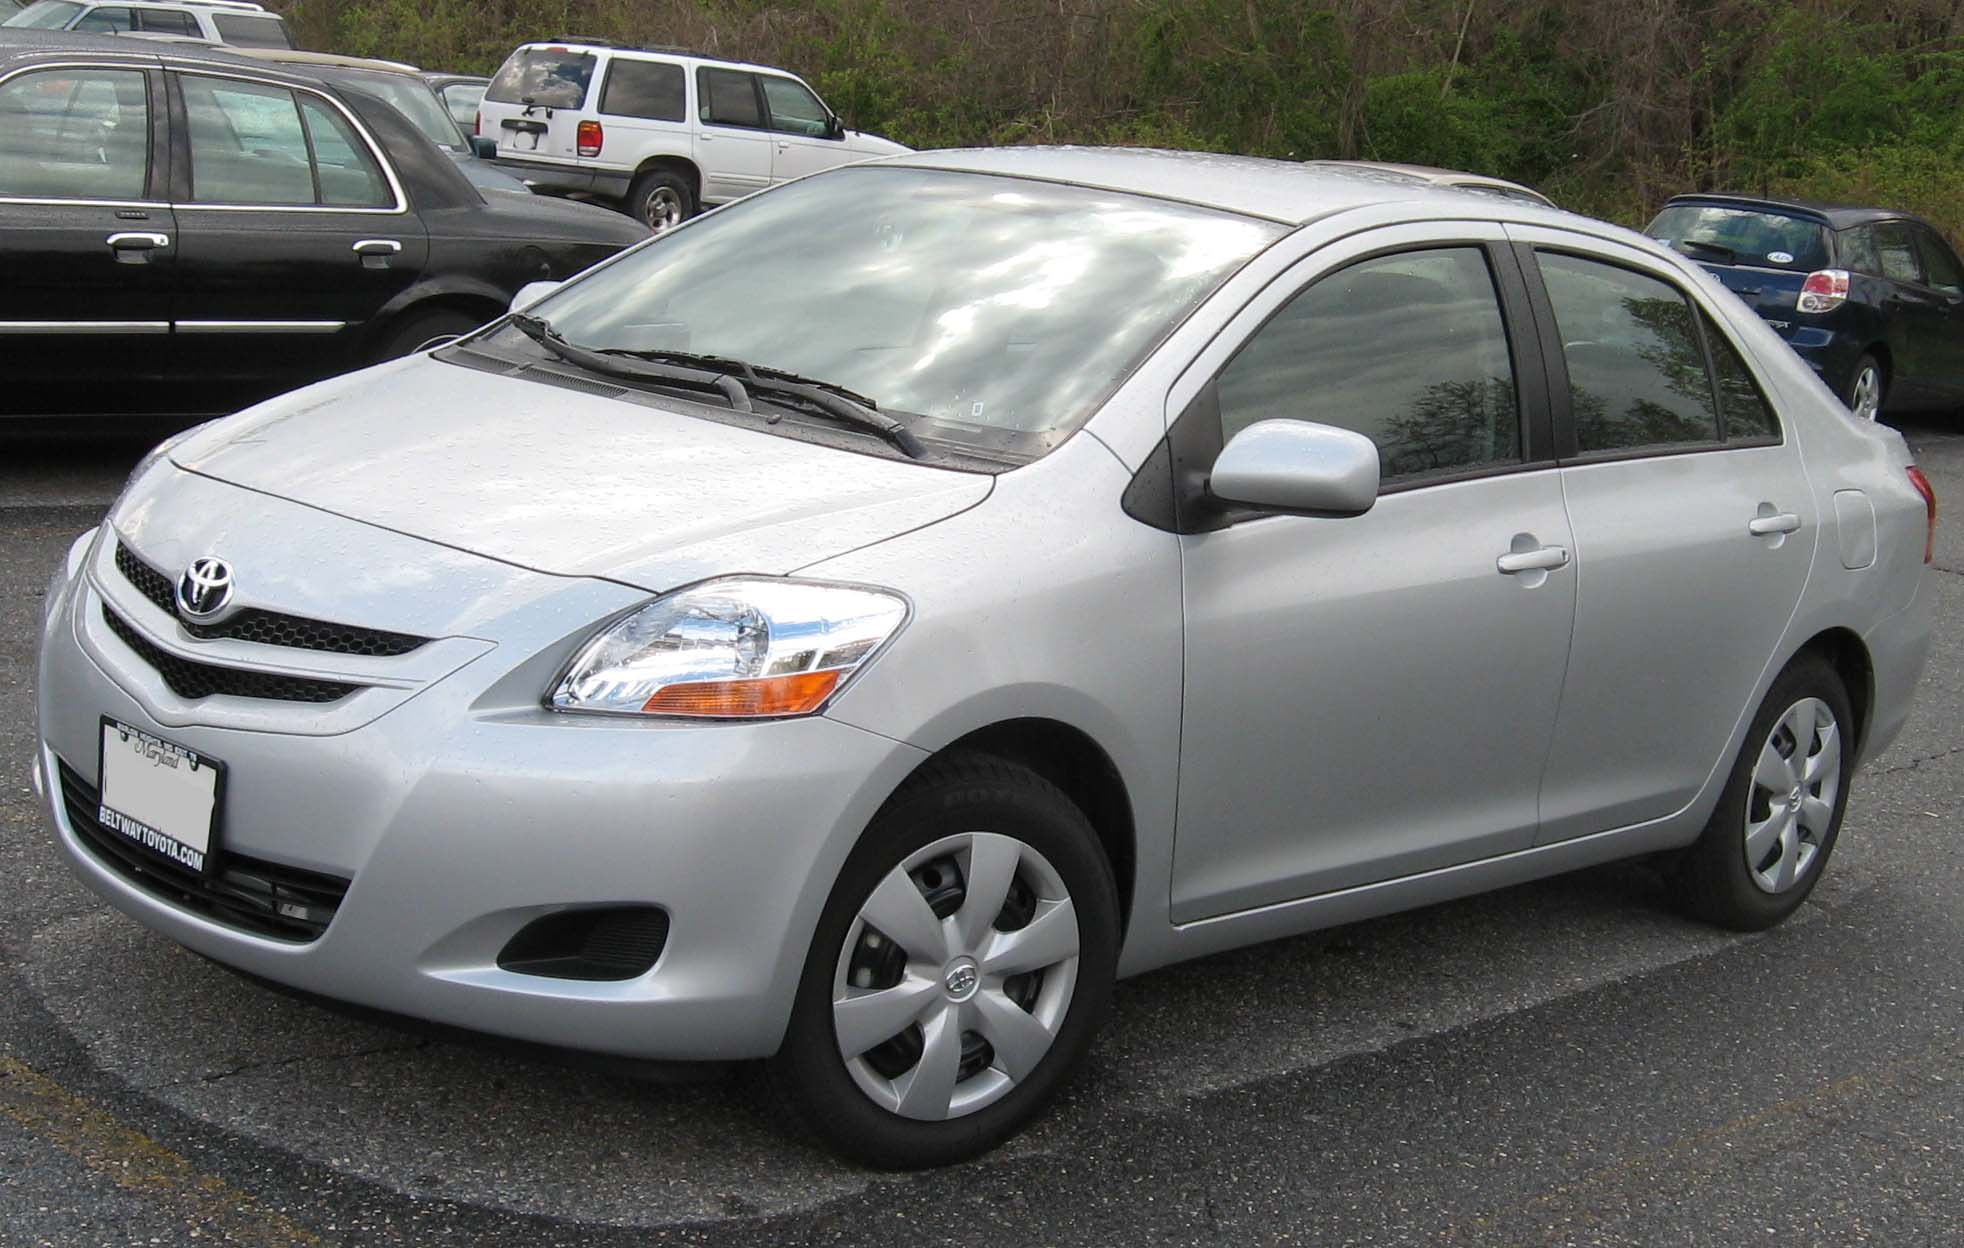 http://upload.wikimedia.org/wikipedia/commons/0/0c/07-Toyota-Yaris-Base-sedan.jpg